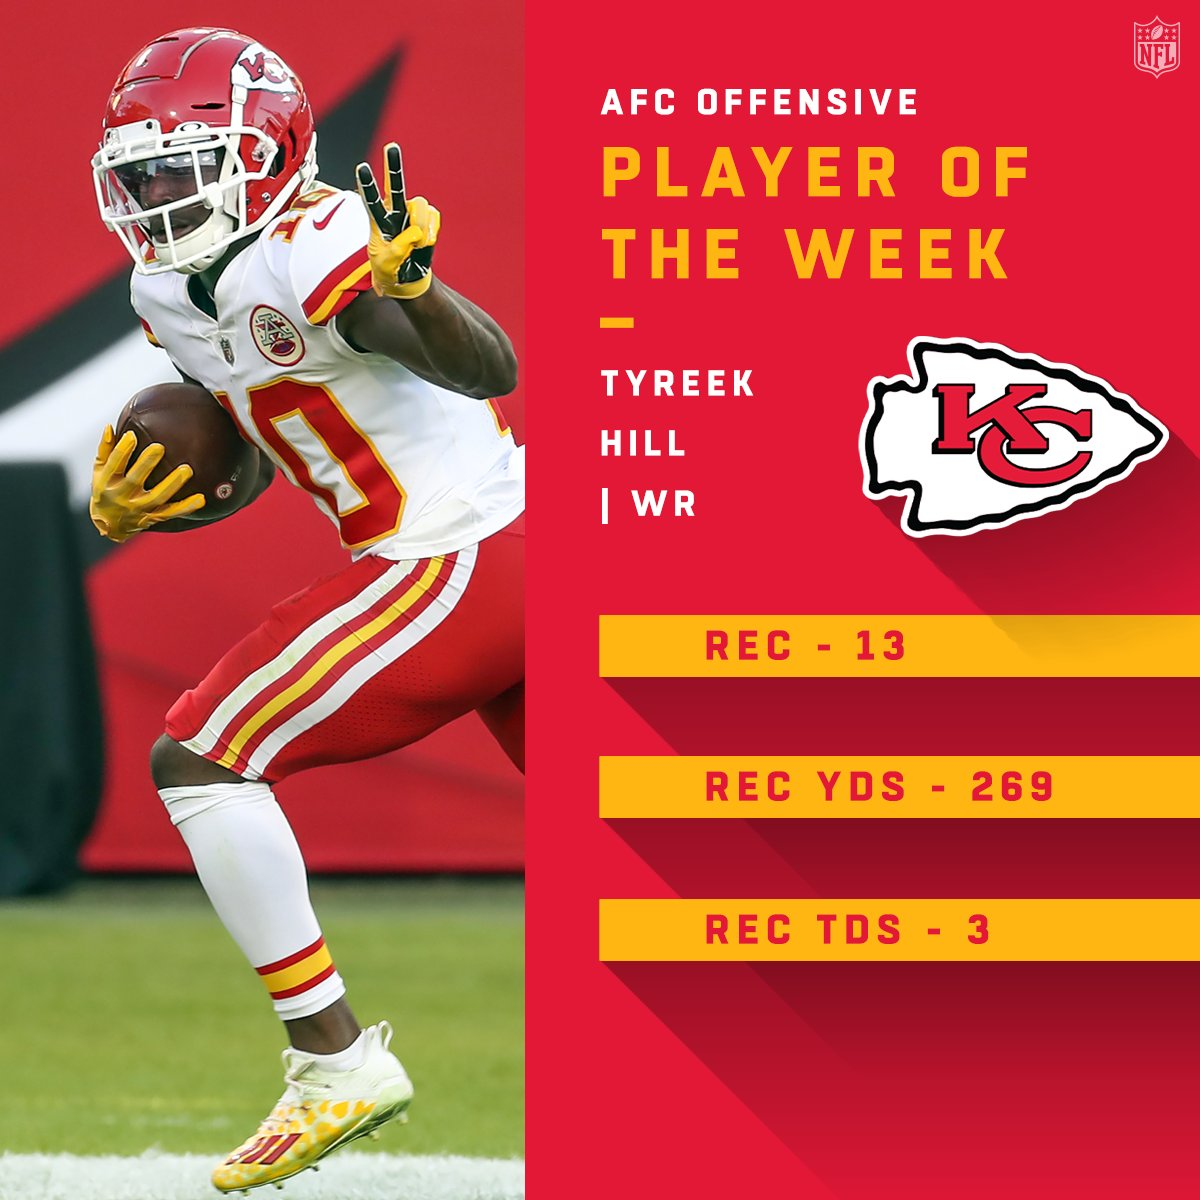 Players of the Week for Week 12  NFC Offense: #Vikings Kirk Cousins Defense: #Falcons Jacob Tuioti-Mariner Special: #49ers Robbie Gould  AFC Offense: #Chiefs Tyreek Hill Defense: #Bills A.J. Klein Special: #Patriots Nick Folk